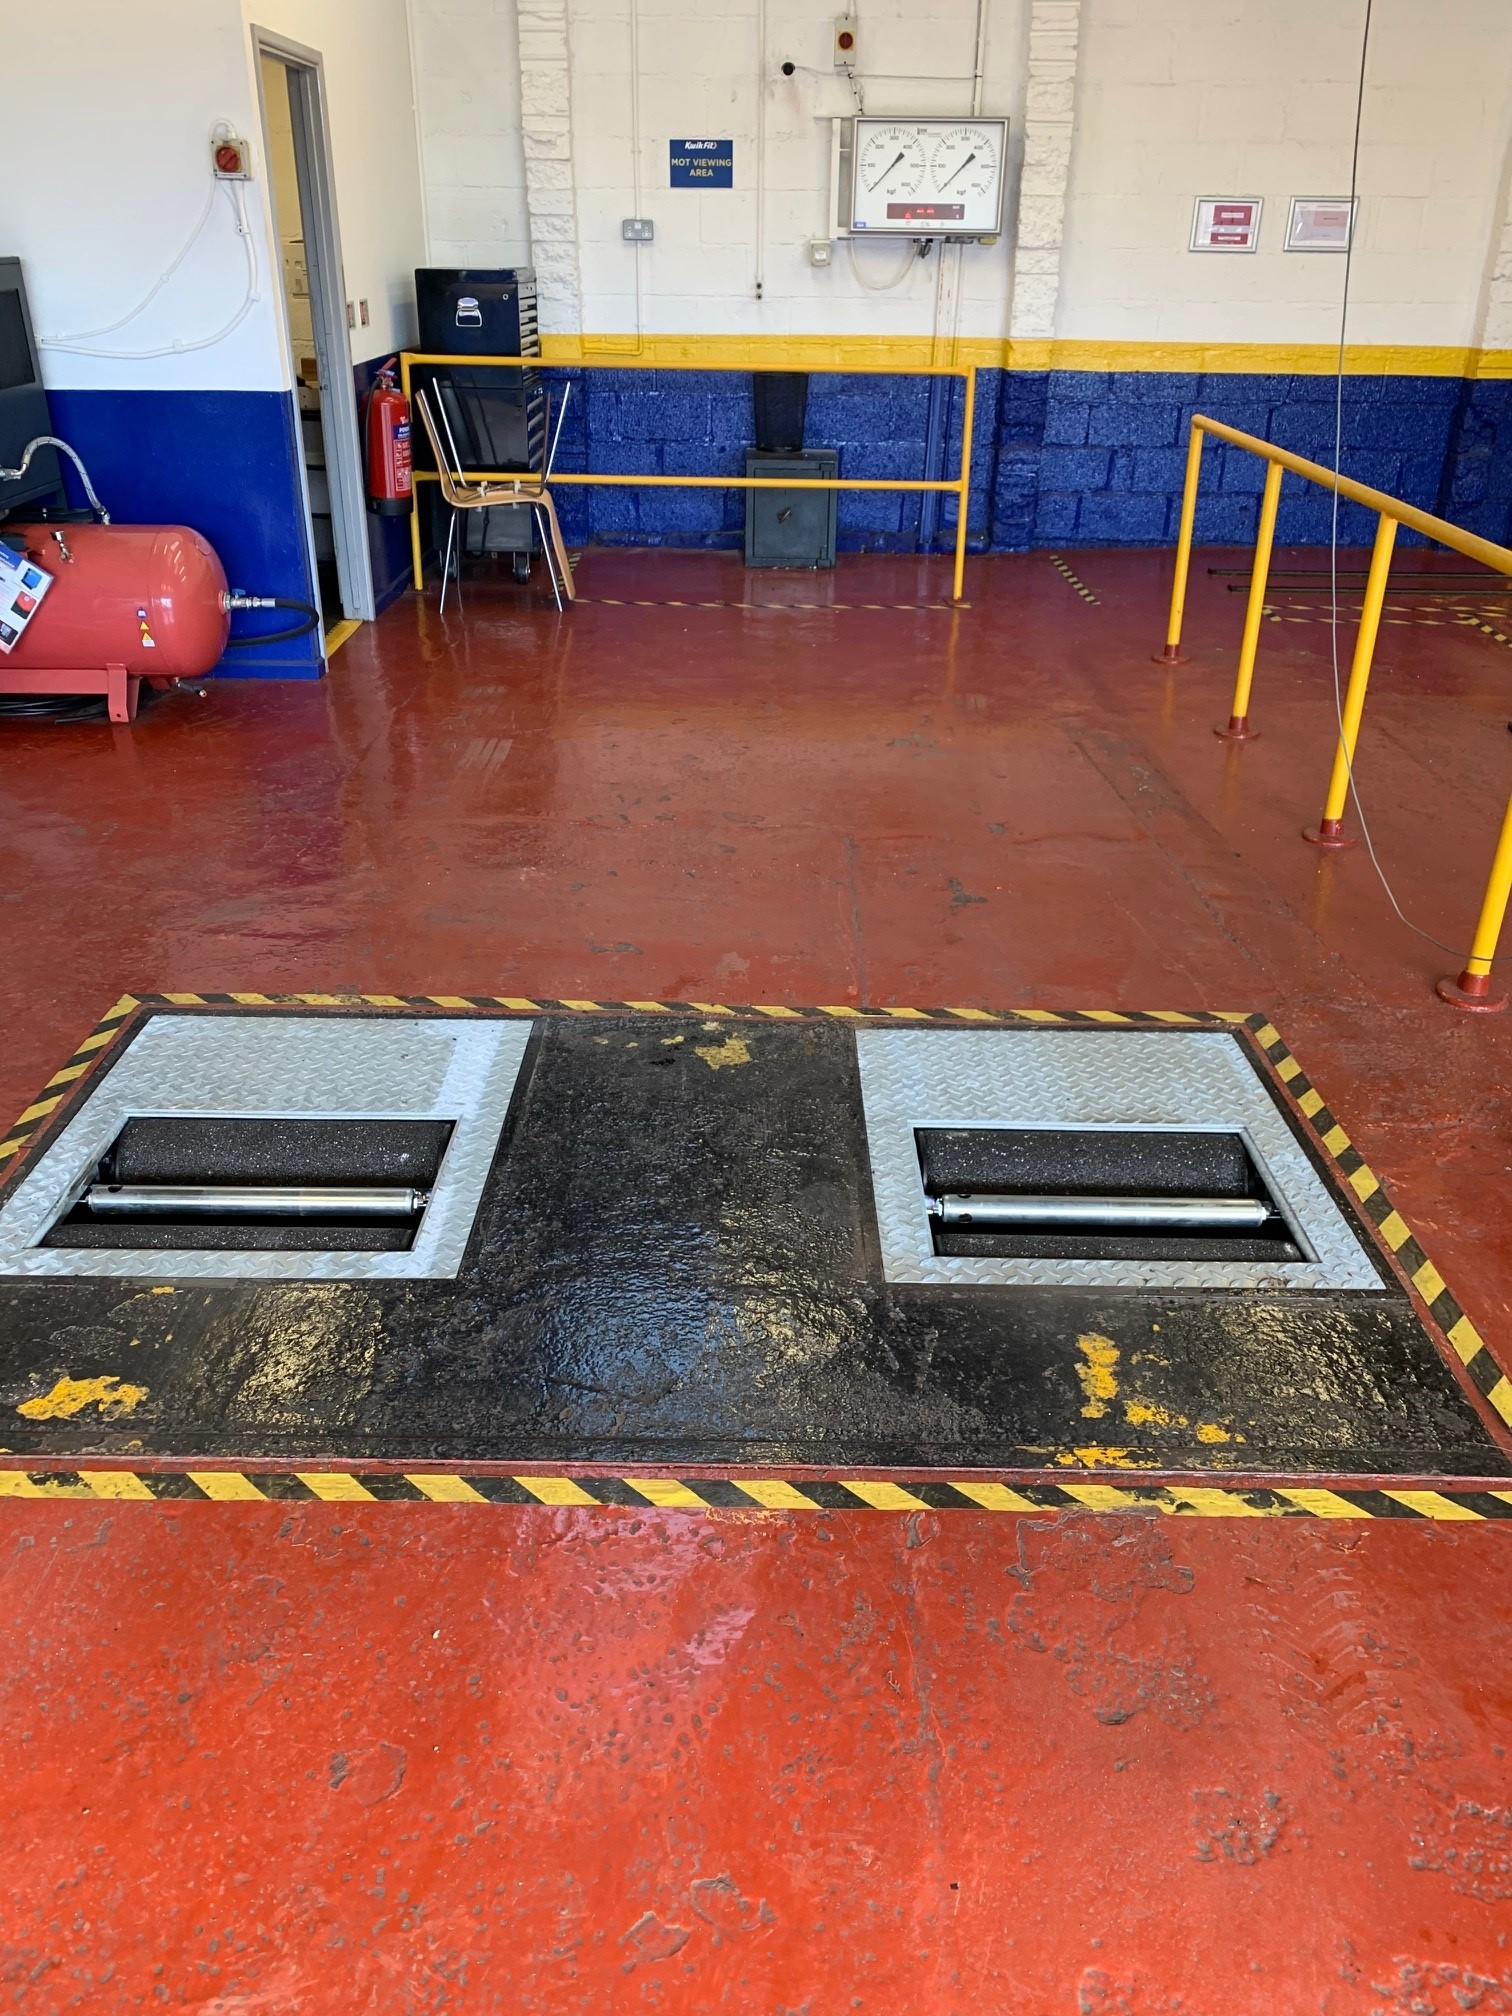 Current DVSA regulations require MOT stations replacing their brake test equipment must introduce Connected Equipment - and that is exactly what Kwik Fit Yate did!